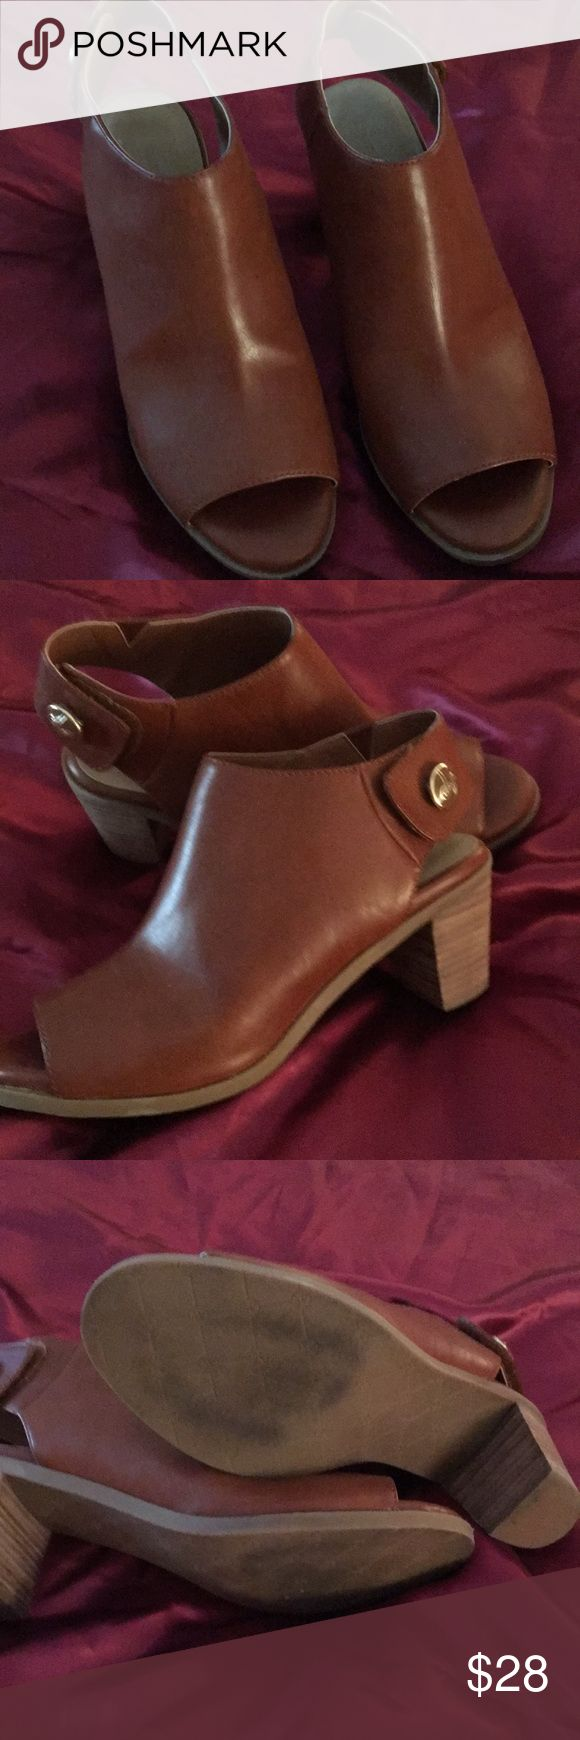 Lindsay Phillips Booties Camel color open toe Booties. Velcro closure. Like new condition. Lindsay Phillipd Shoes Ankle Boots & Booties